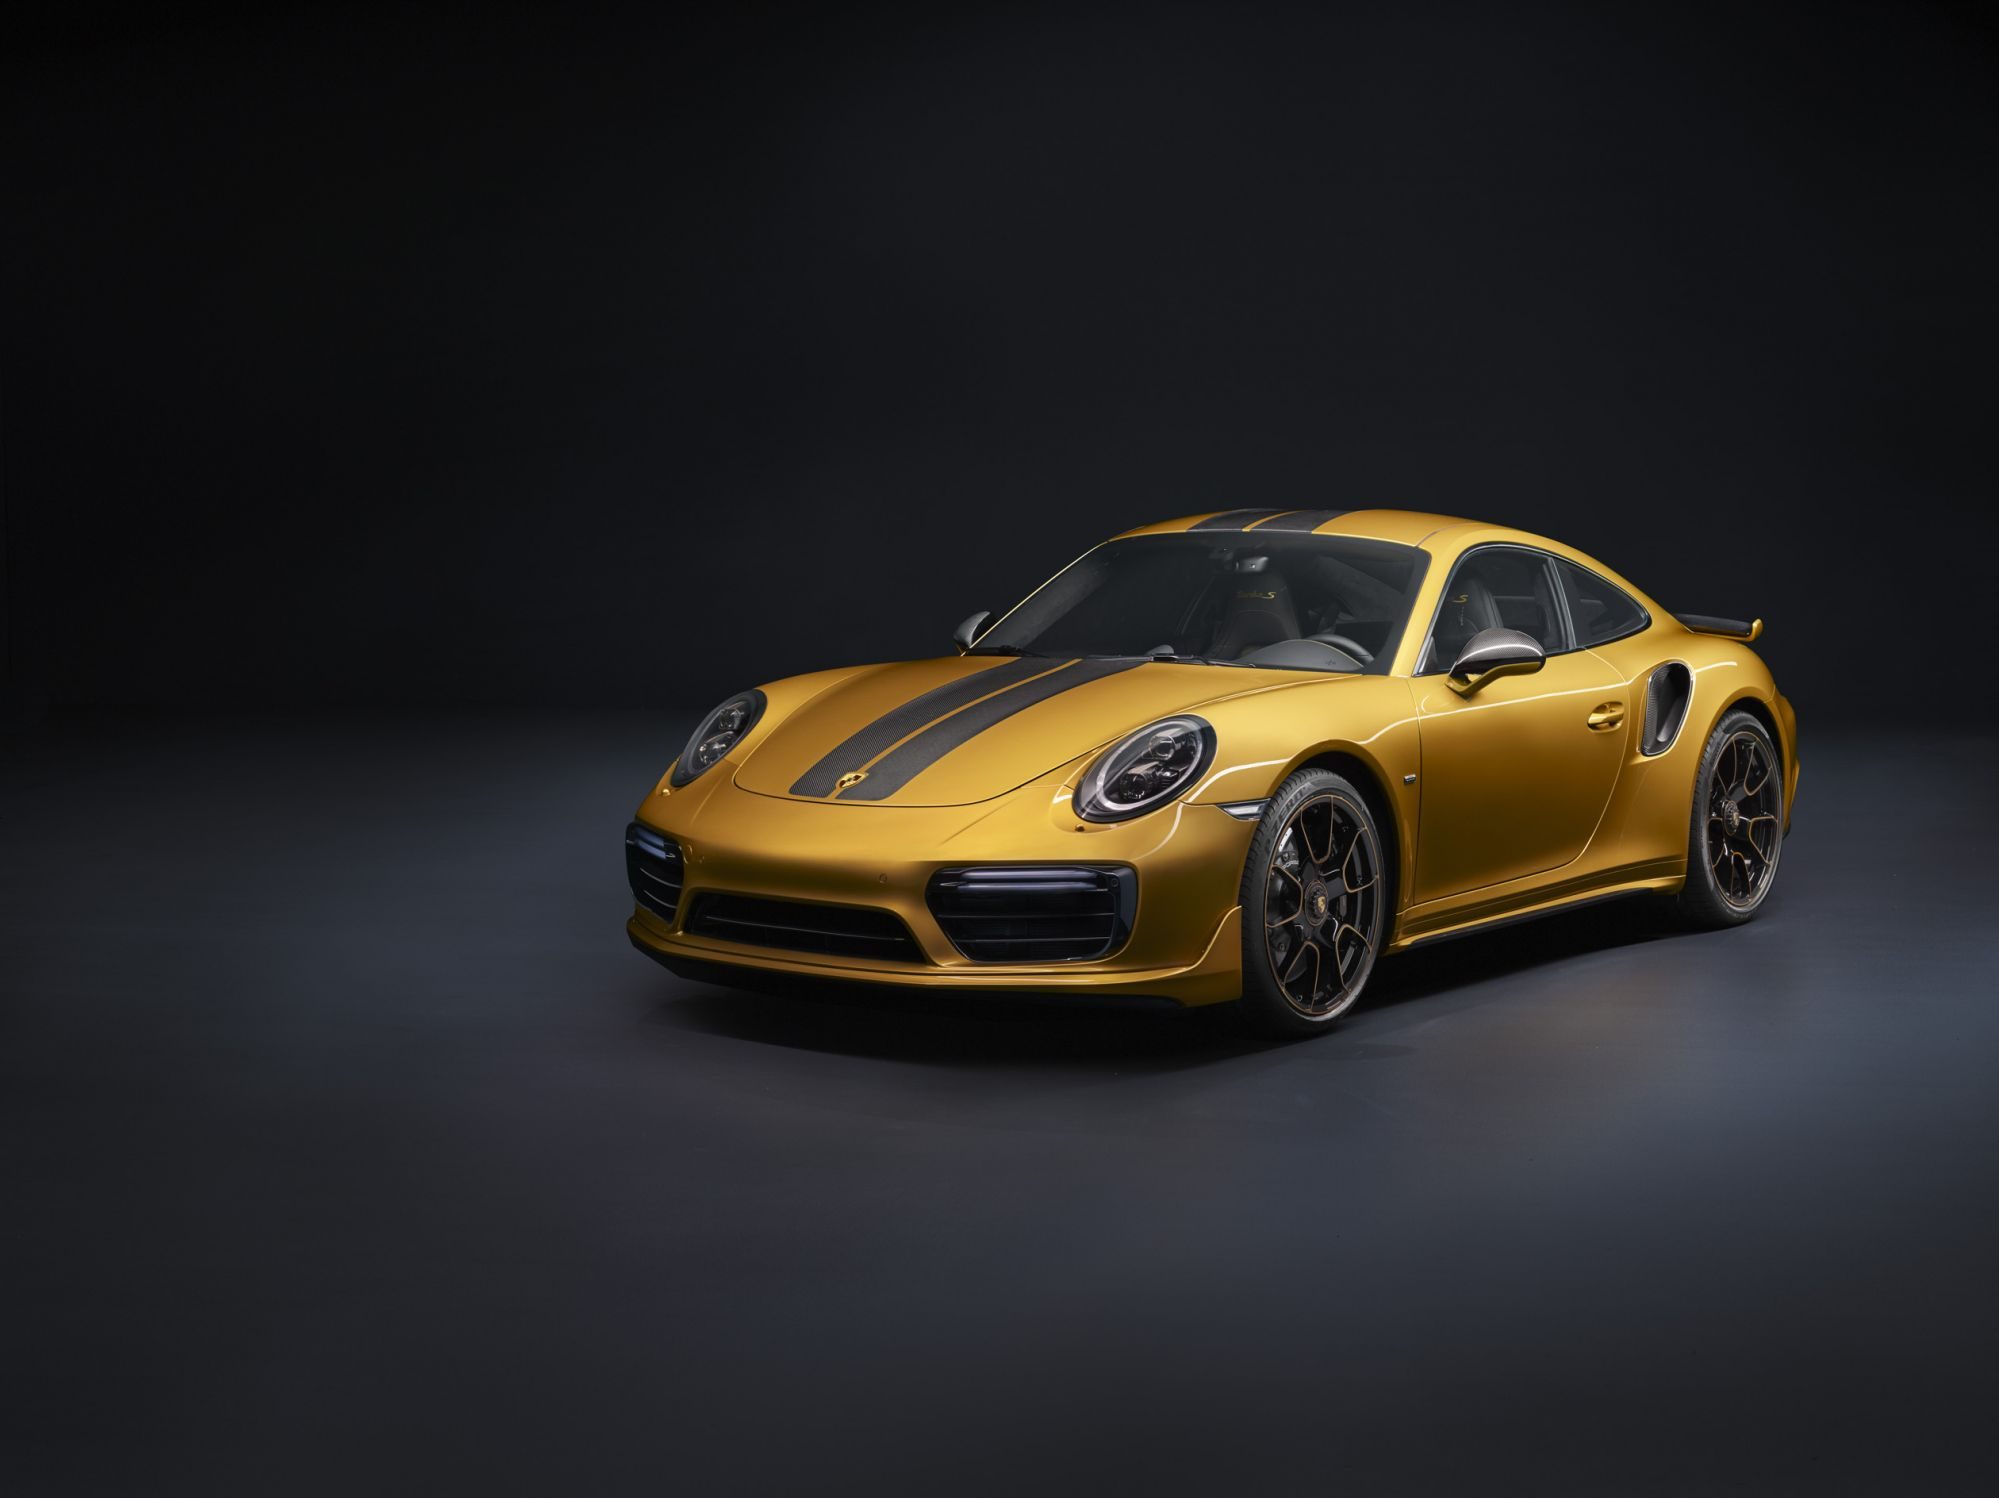 This Is Possibly The Most Powerful Porsche Turbo Ever Built